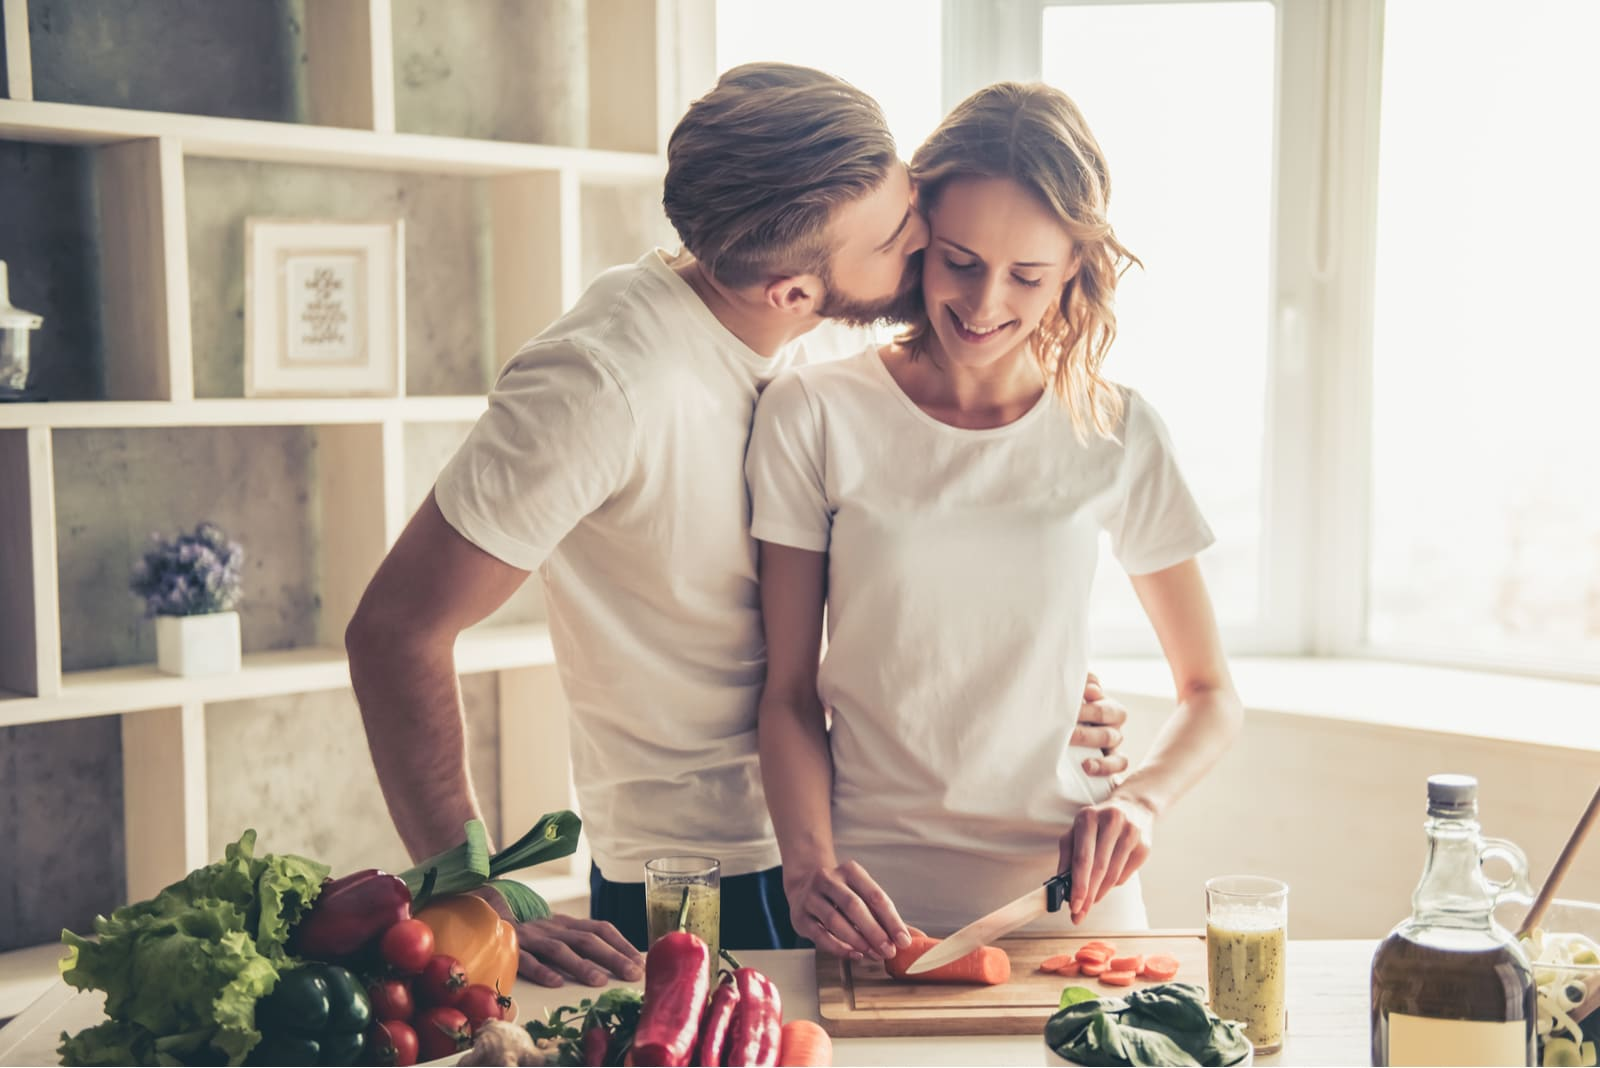 a man and a woman are sitting in the kitchen